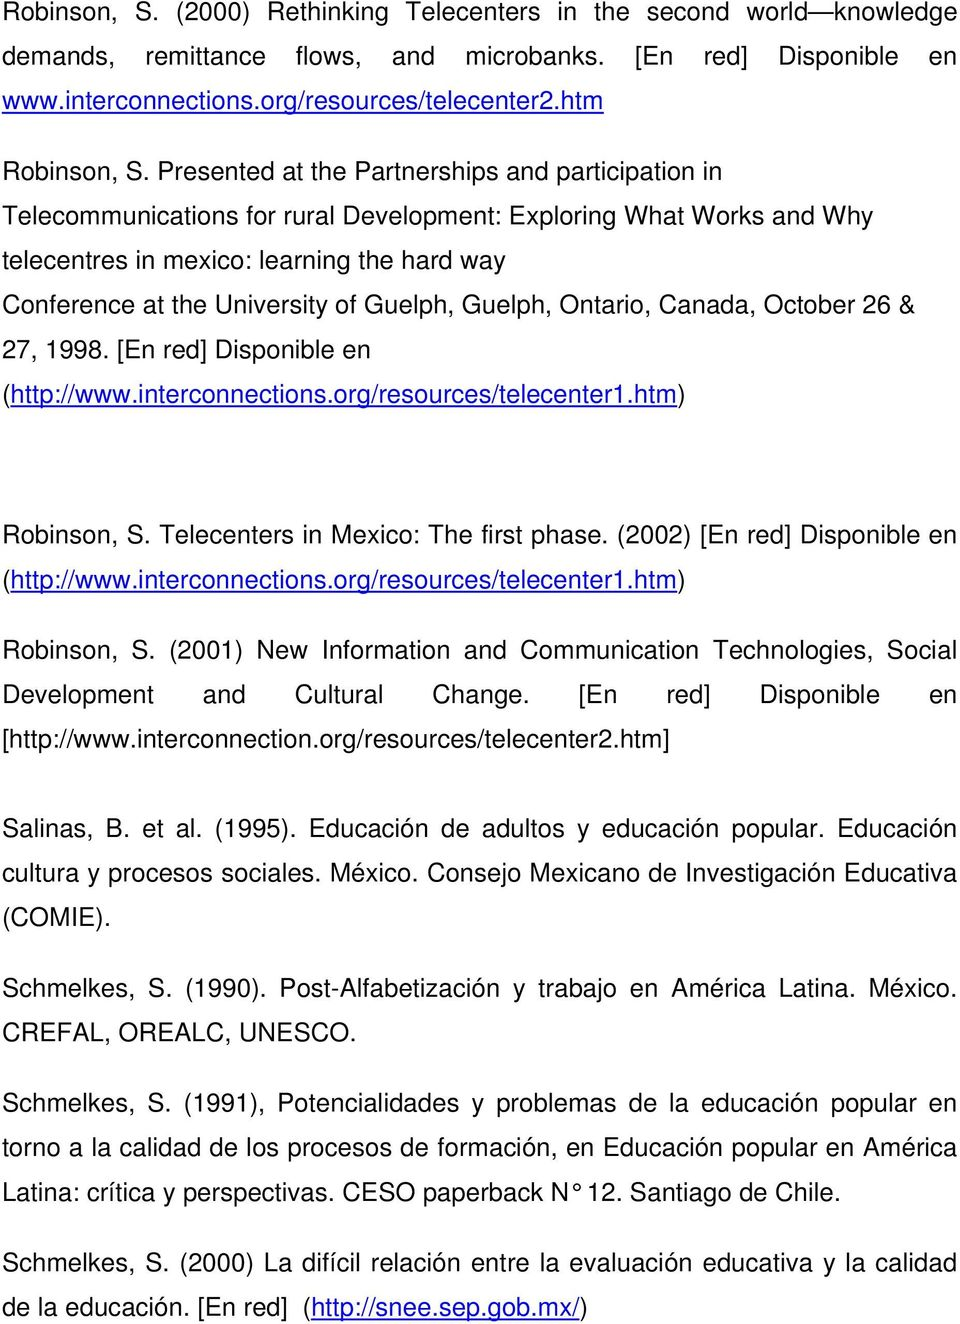 Presented at the Partnerships and participation in Telecommunications for rural Development: Exploring What Works and Why telecentres in mexico: learning the hard way Conference at the University of